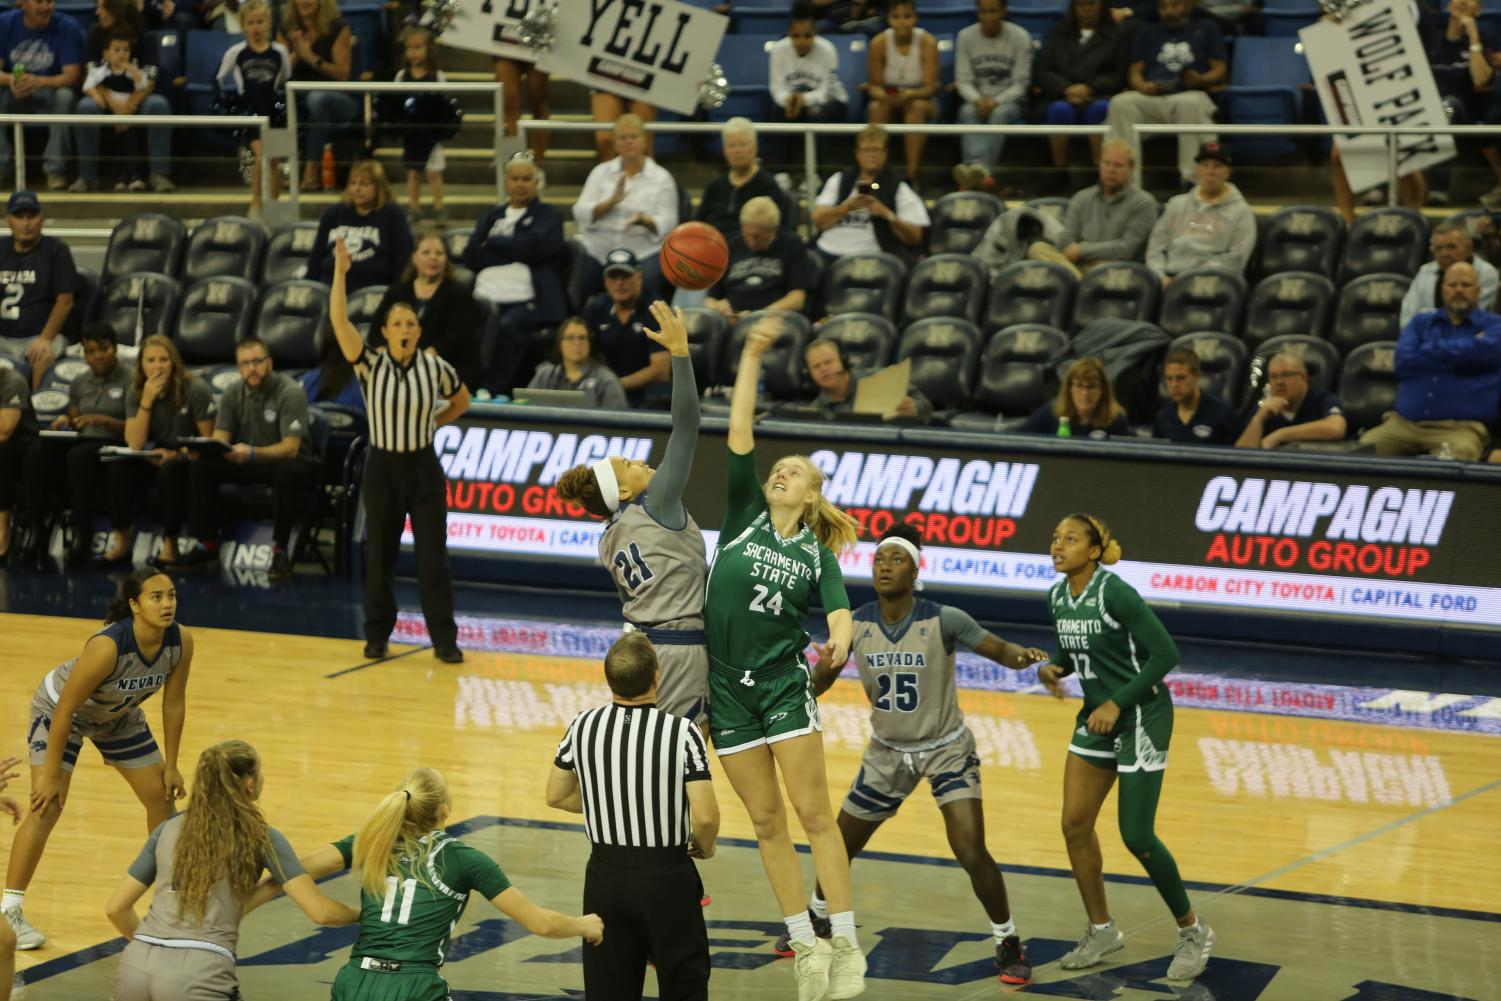 Sac State sophomore forward Tiana Johnson battles Nevada sophomore forward Imani Lacy for the opening tip on Saturday, Nov. 9 at Lawlor Events Center in Reno, Nevada. The Hornets led after the first half, but ultimately lost 83-72 to the Wolf Pack.